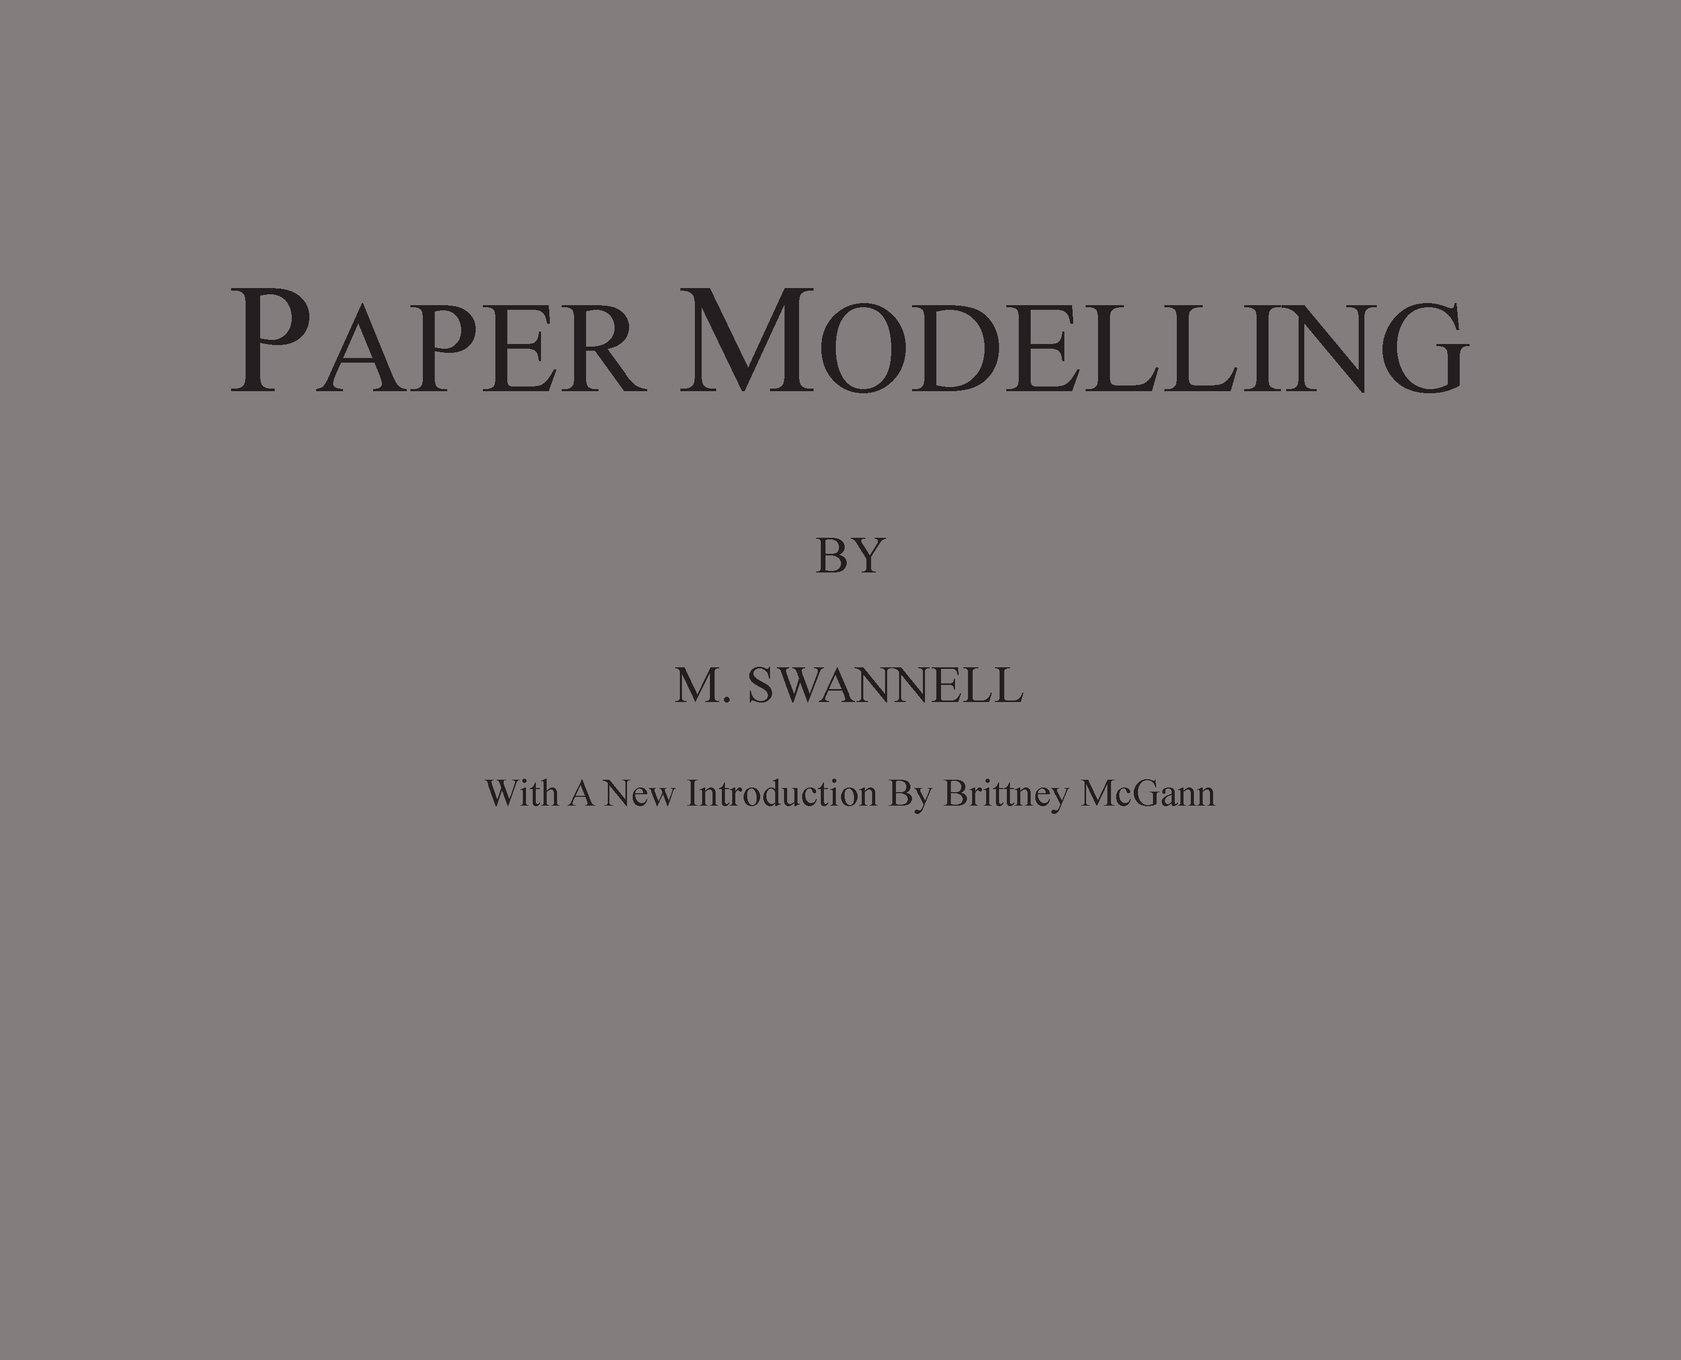 Paper Modelling: A Combination of Paper Folding, Paper Cutting & Pasting and Ruler Drawing Forming an Introduction to Cardboard Modelling